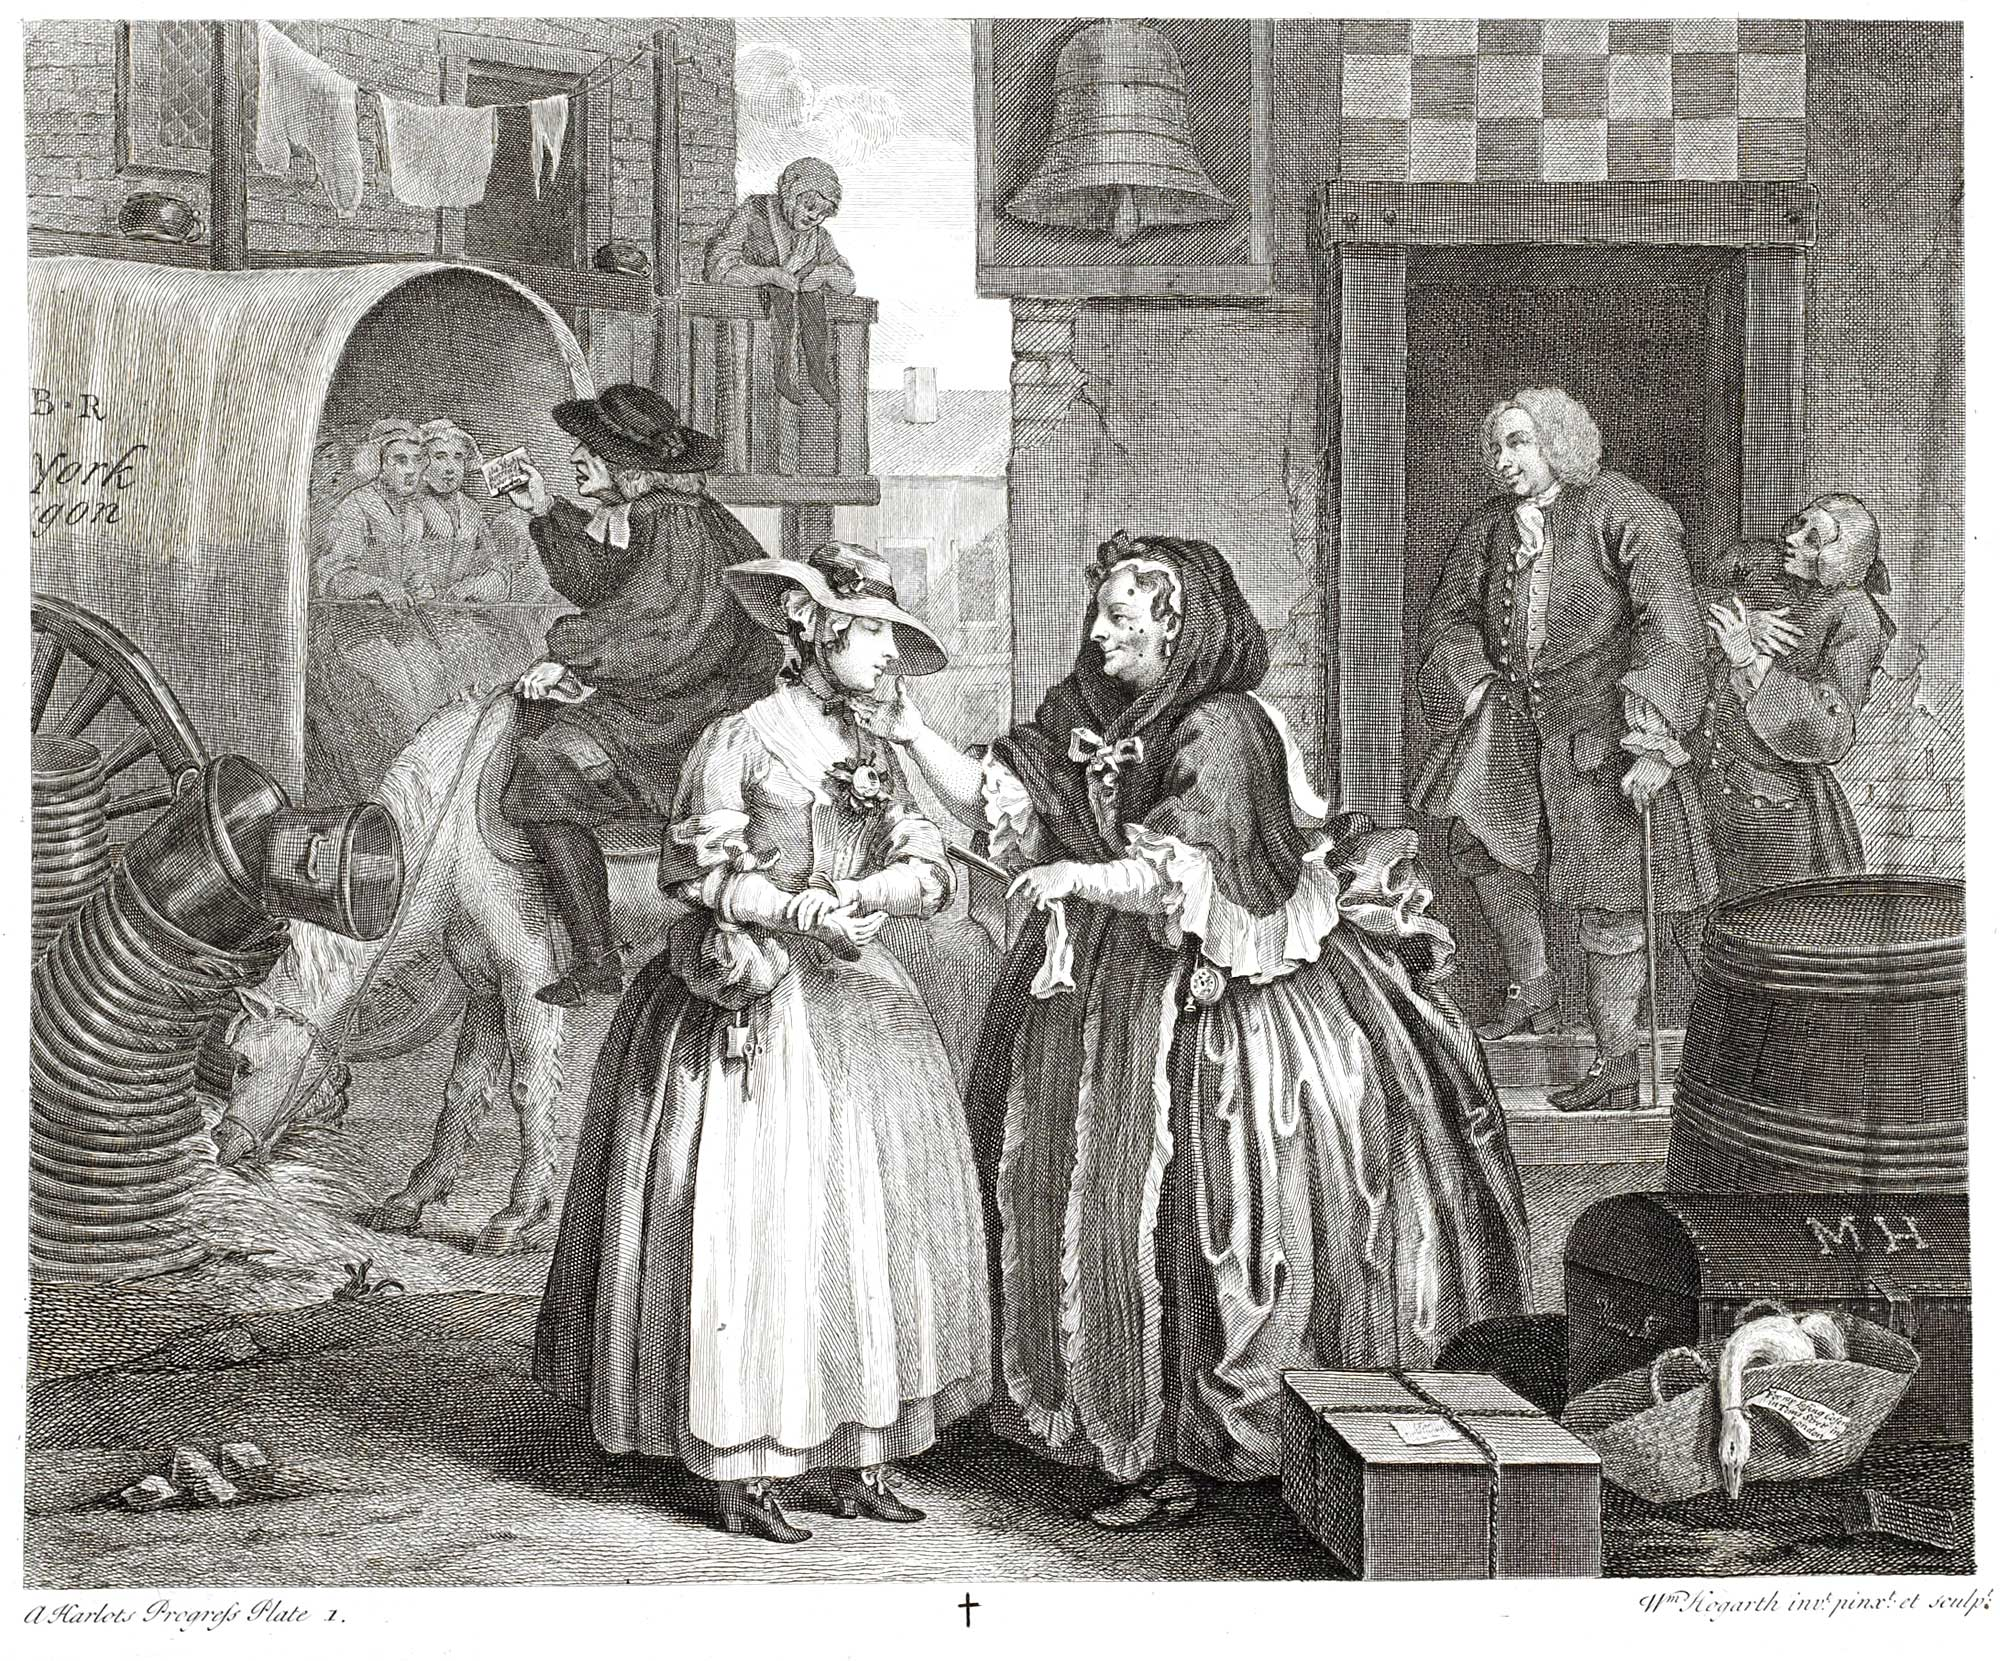 Hogarth, Harlot's Progress